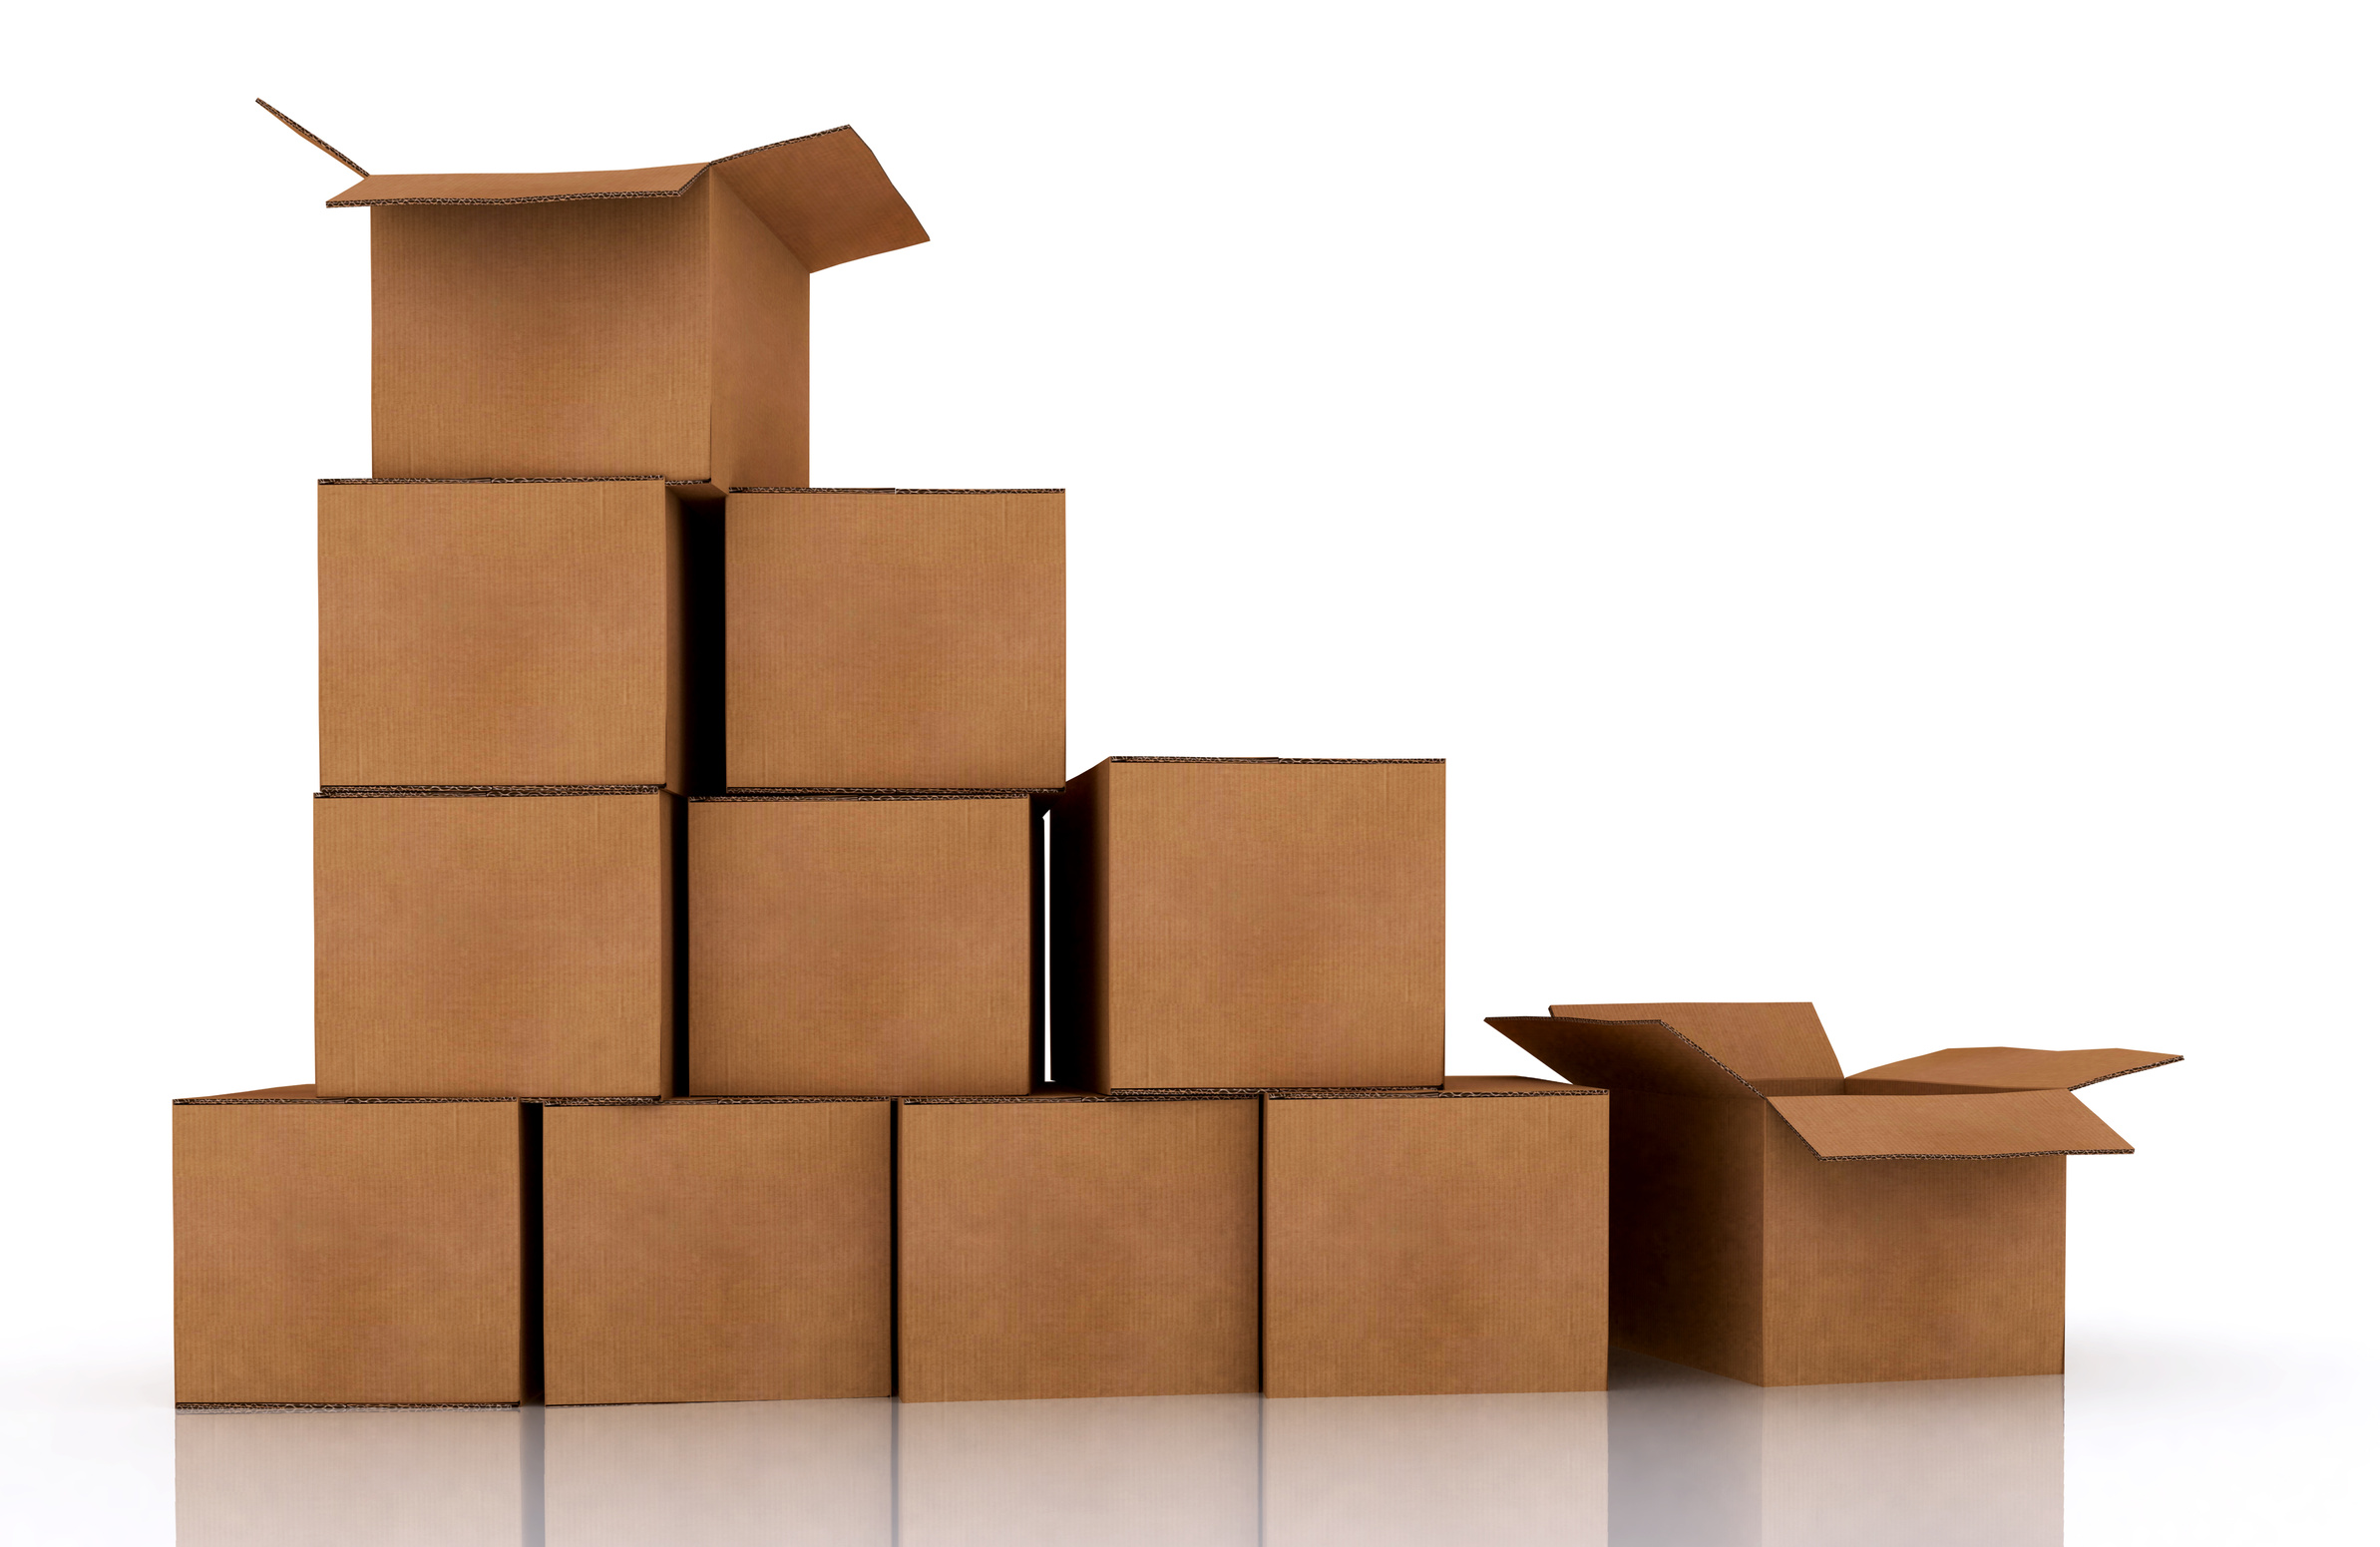 clipart royalty free library Cliparts free download best. Boxes clipart stacked box.